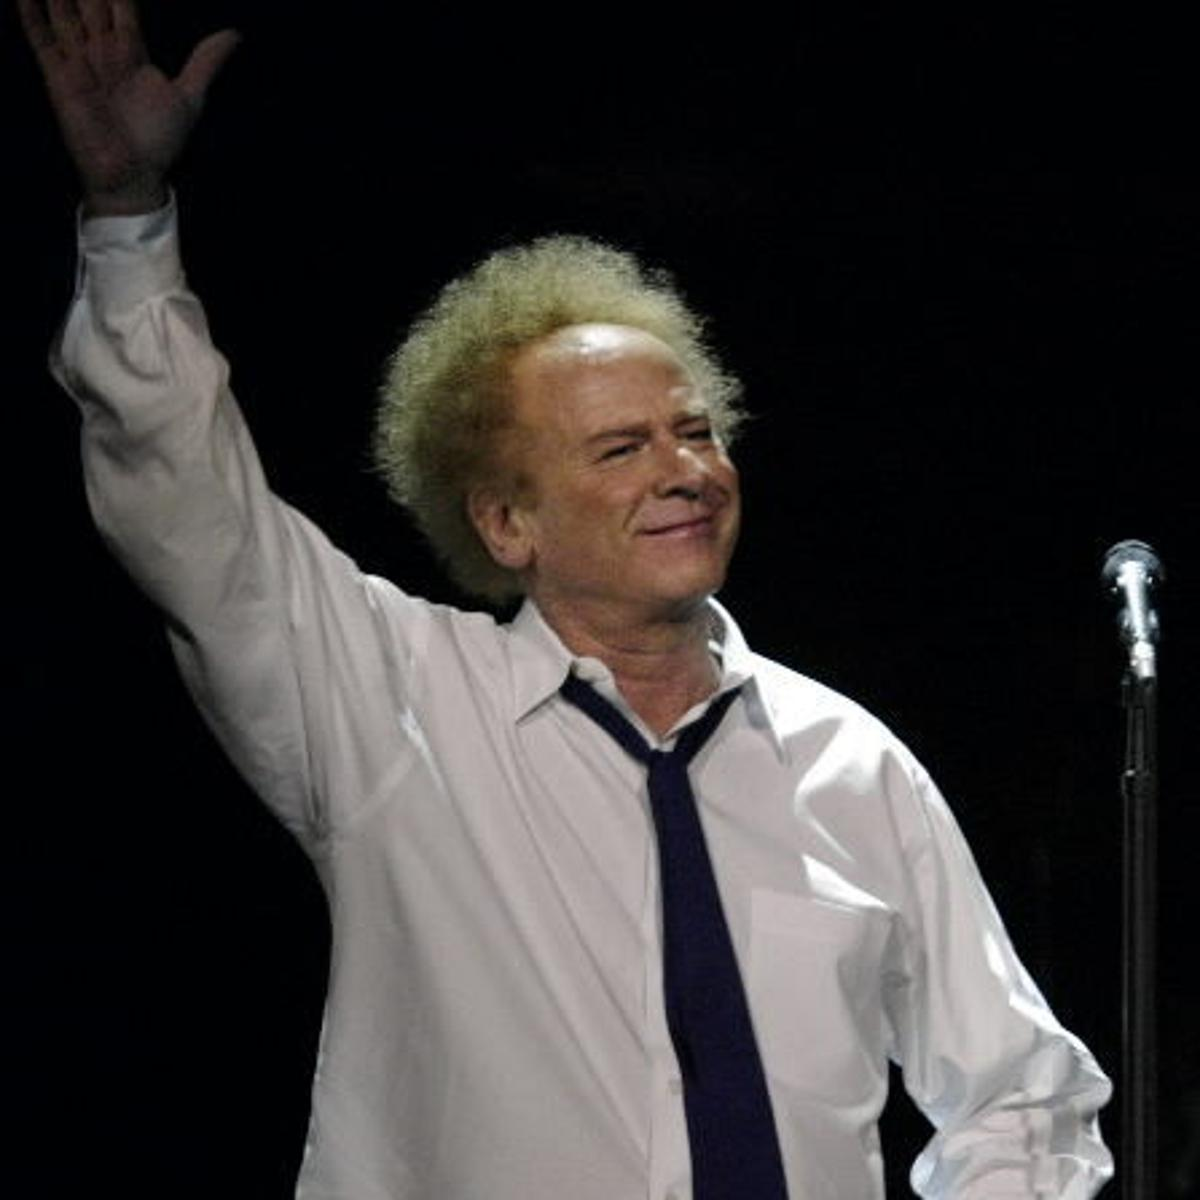 99 Miles From La Art Garfunkel music briefs: art garfunkel is fox theatre bound  latest